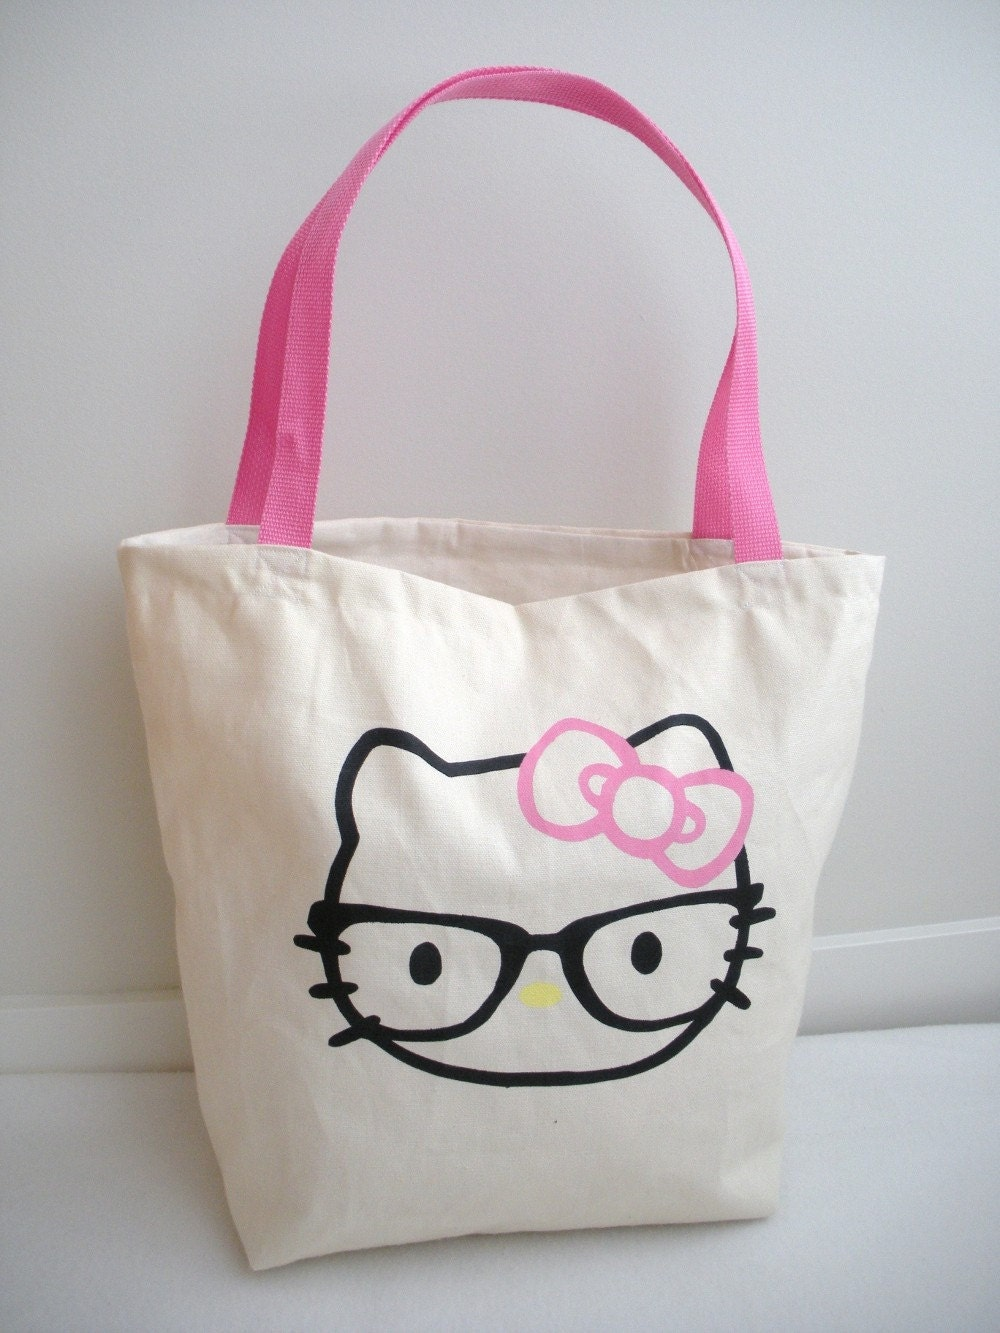 Tote Bag, Hello Kitty X Nerd Inspired, Eco-friendly, Organic Cotton Duck Canvas, Medium